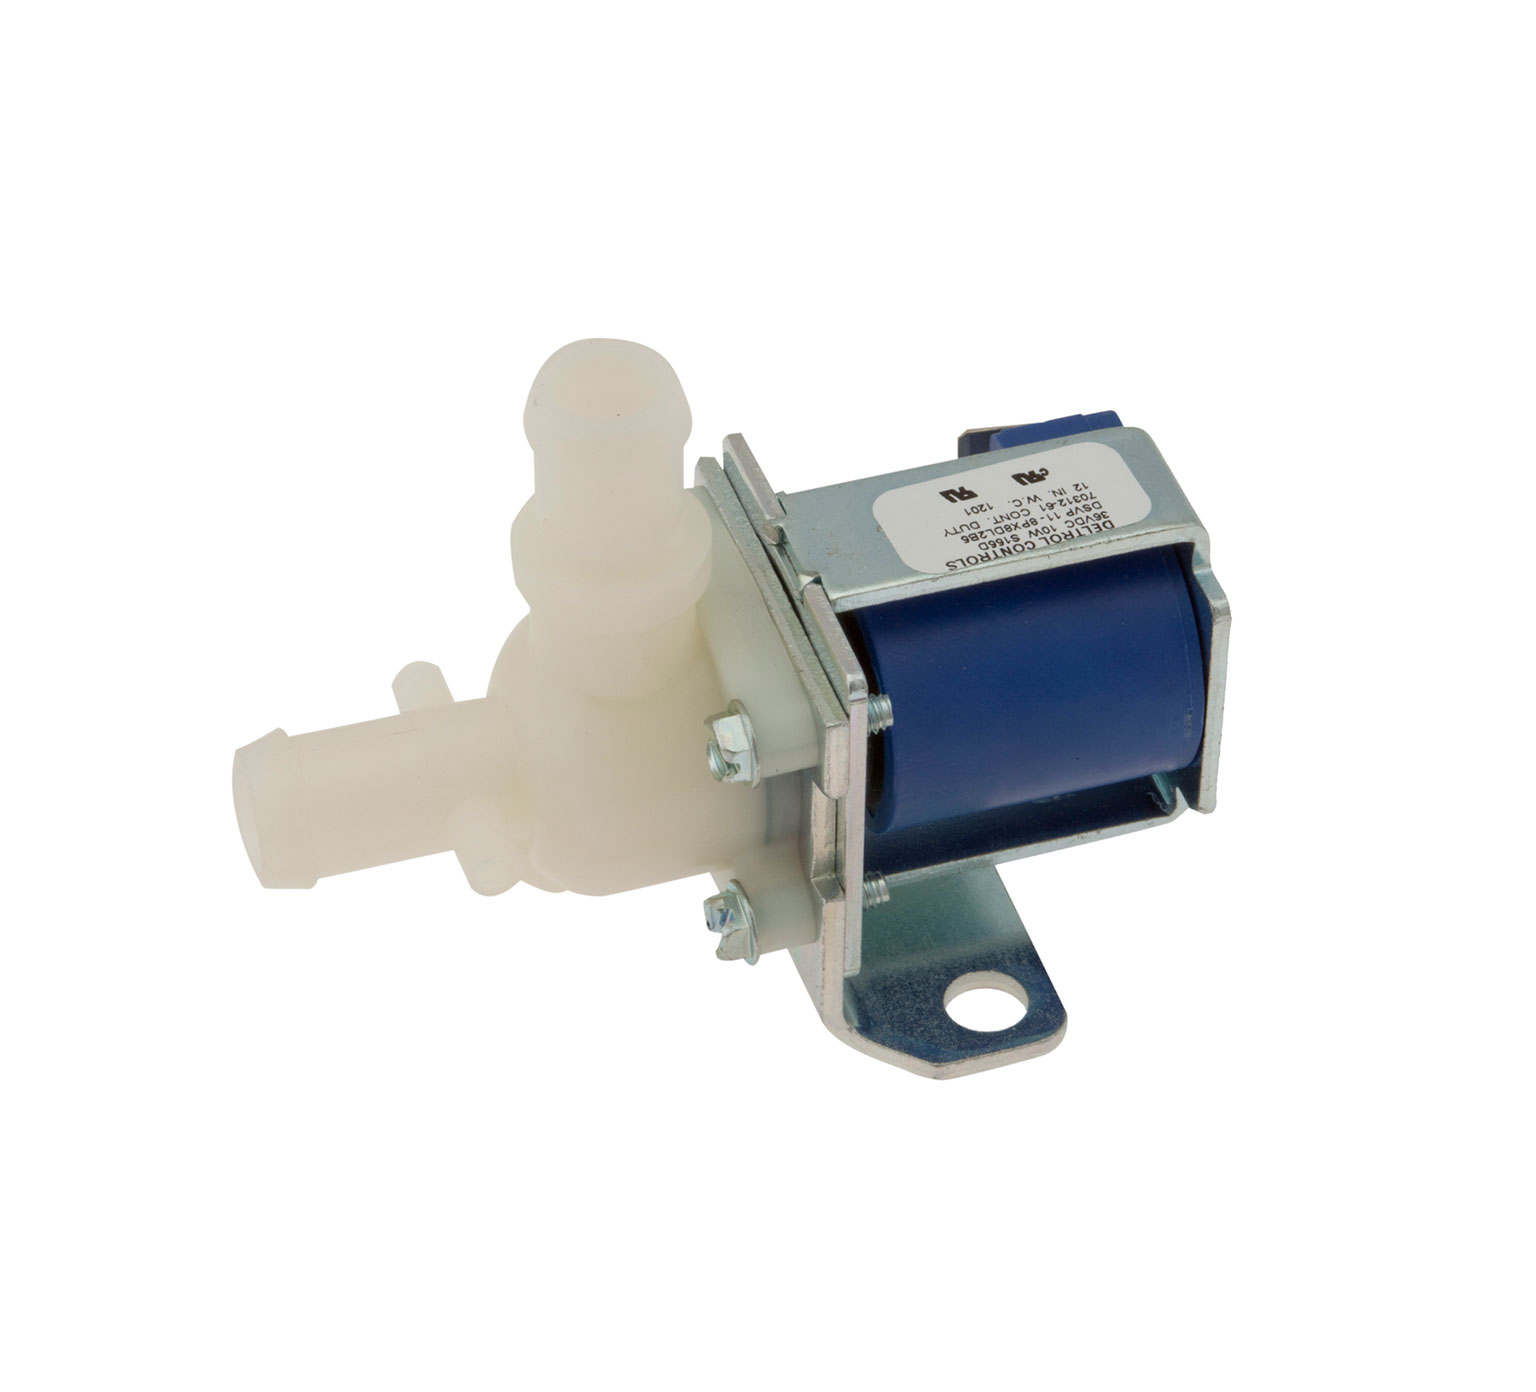 Solution Valve - 36 Volt Fixed - Replaces Tennant 222113